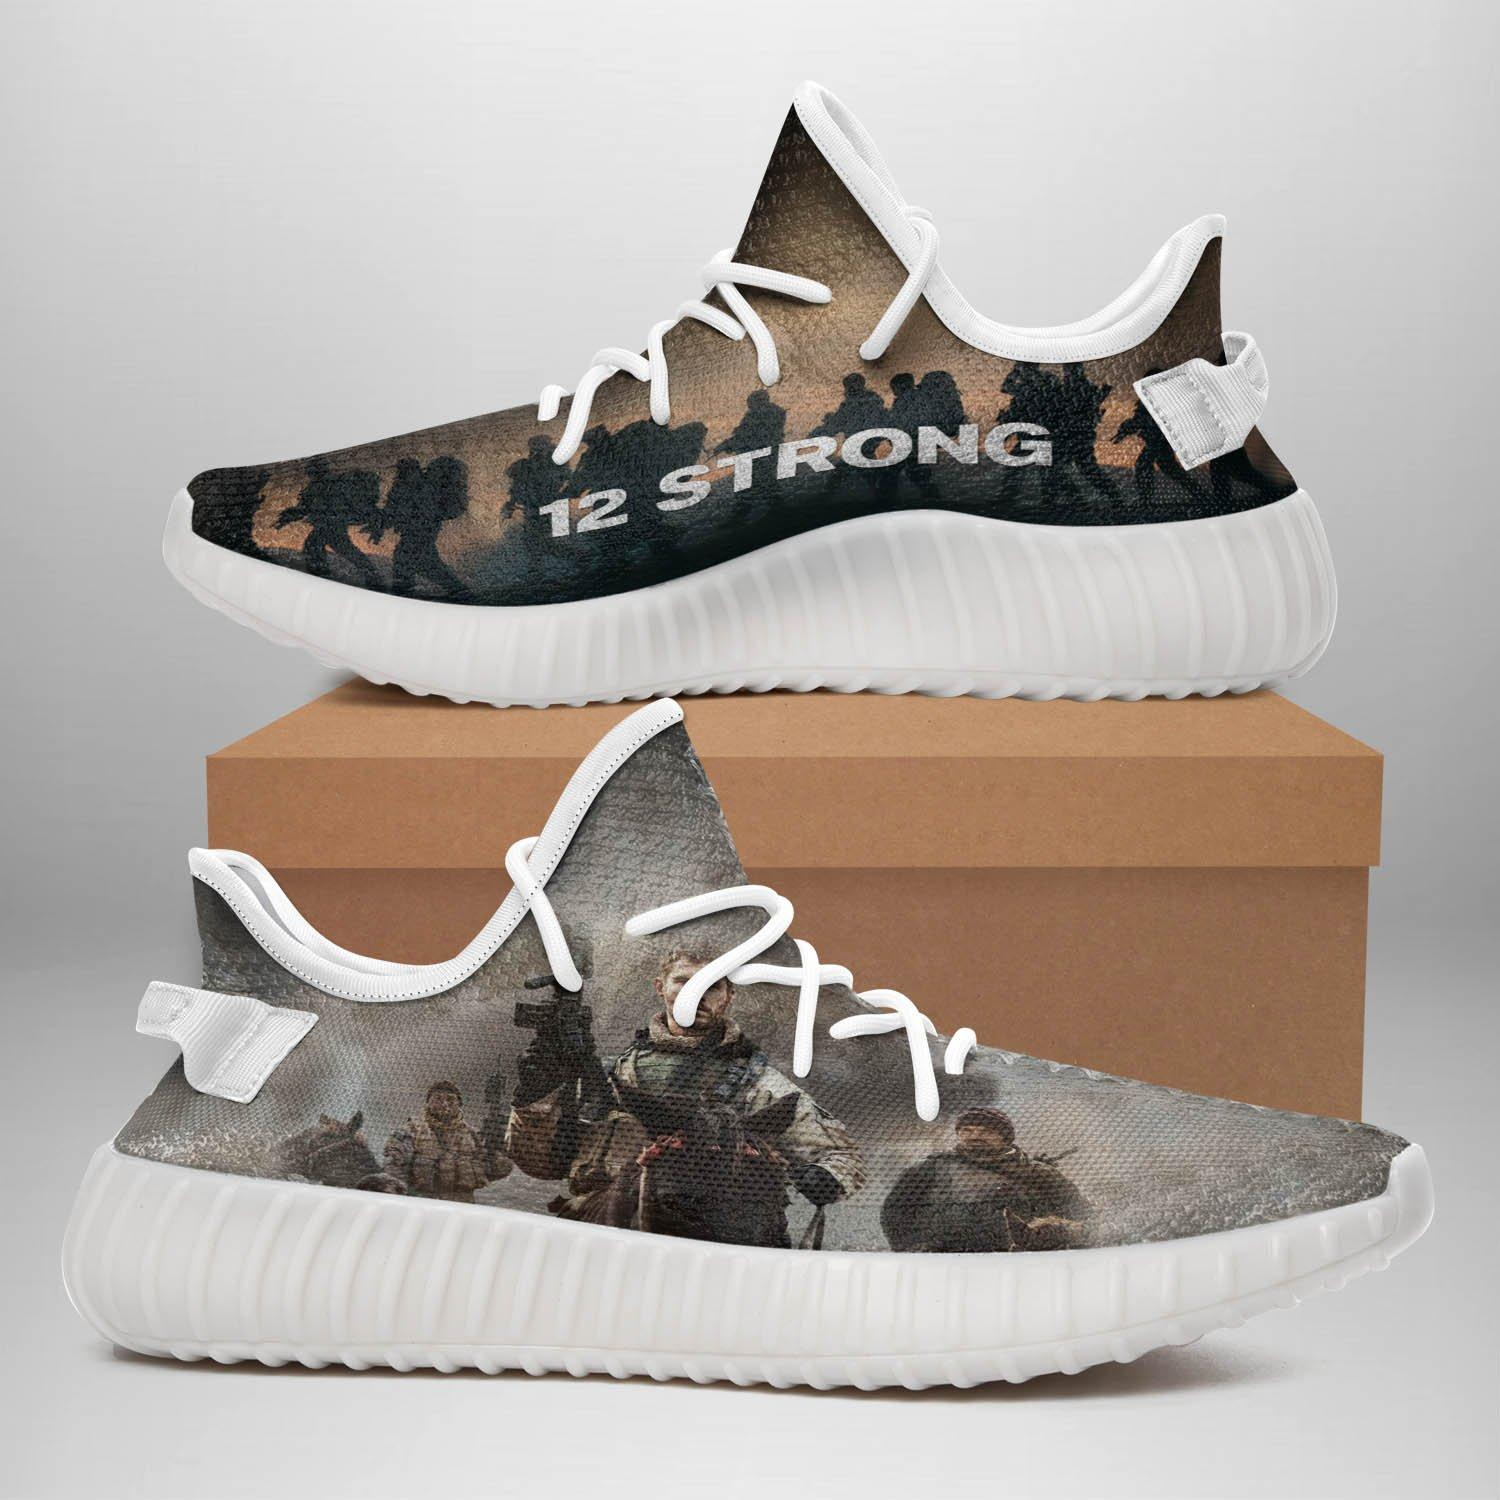 12 Strong ? Yeezy Sneakers PT070